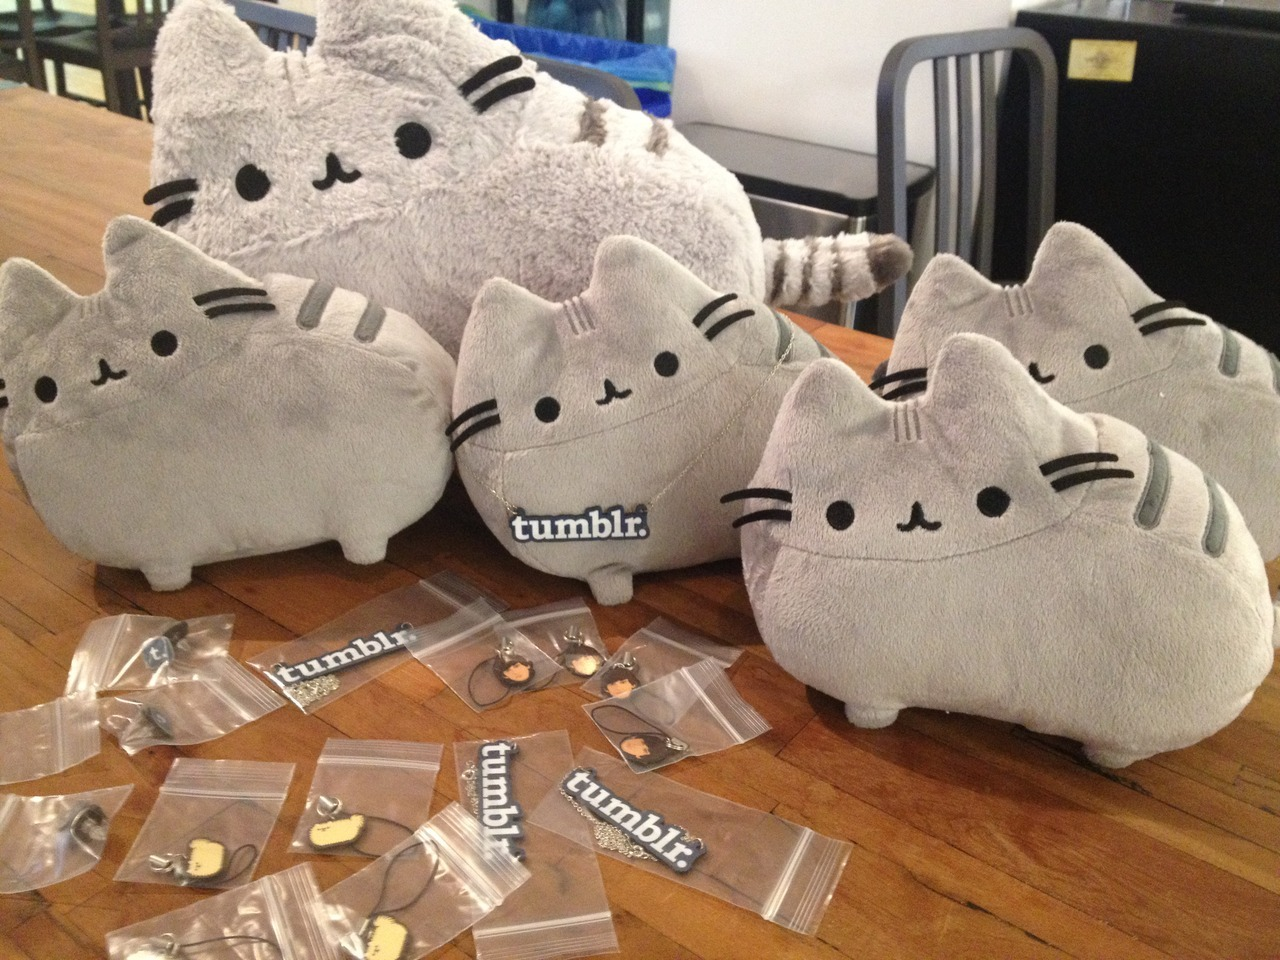 OHMYPOM!!! My pal Pusheen sent in the most amazing box of goodies to the Tumblr office today!! Including little phone charms of yours truly: tommypom! This is unbelievable.. Pusheen is my best friend in the world!!@$!